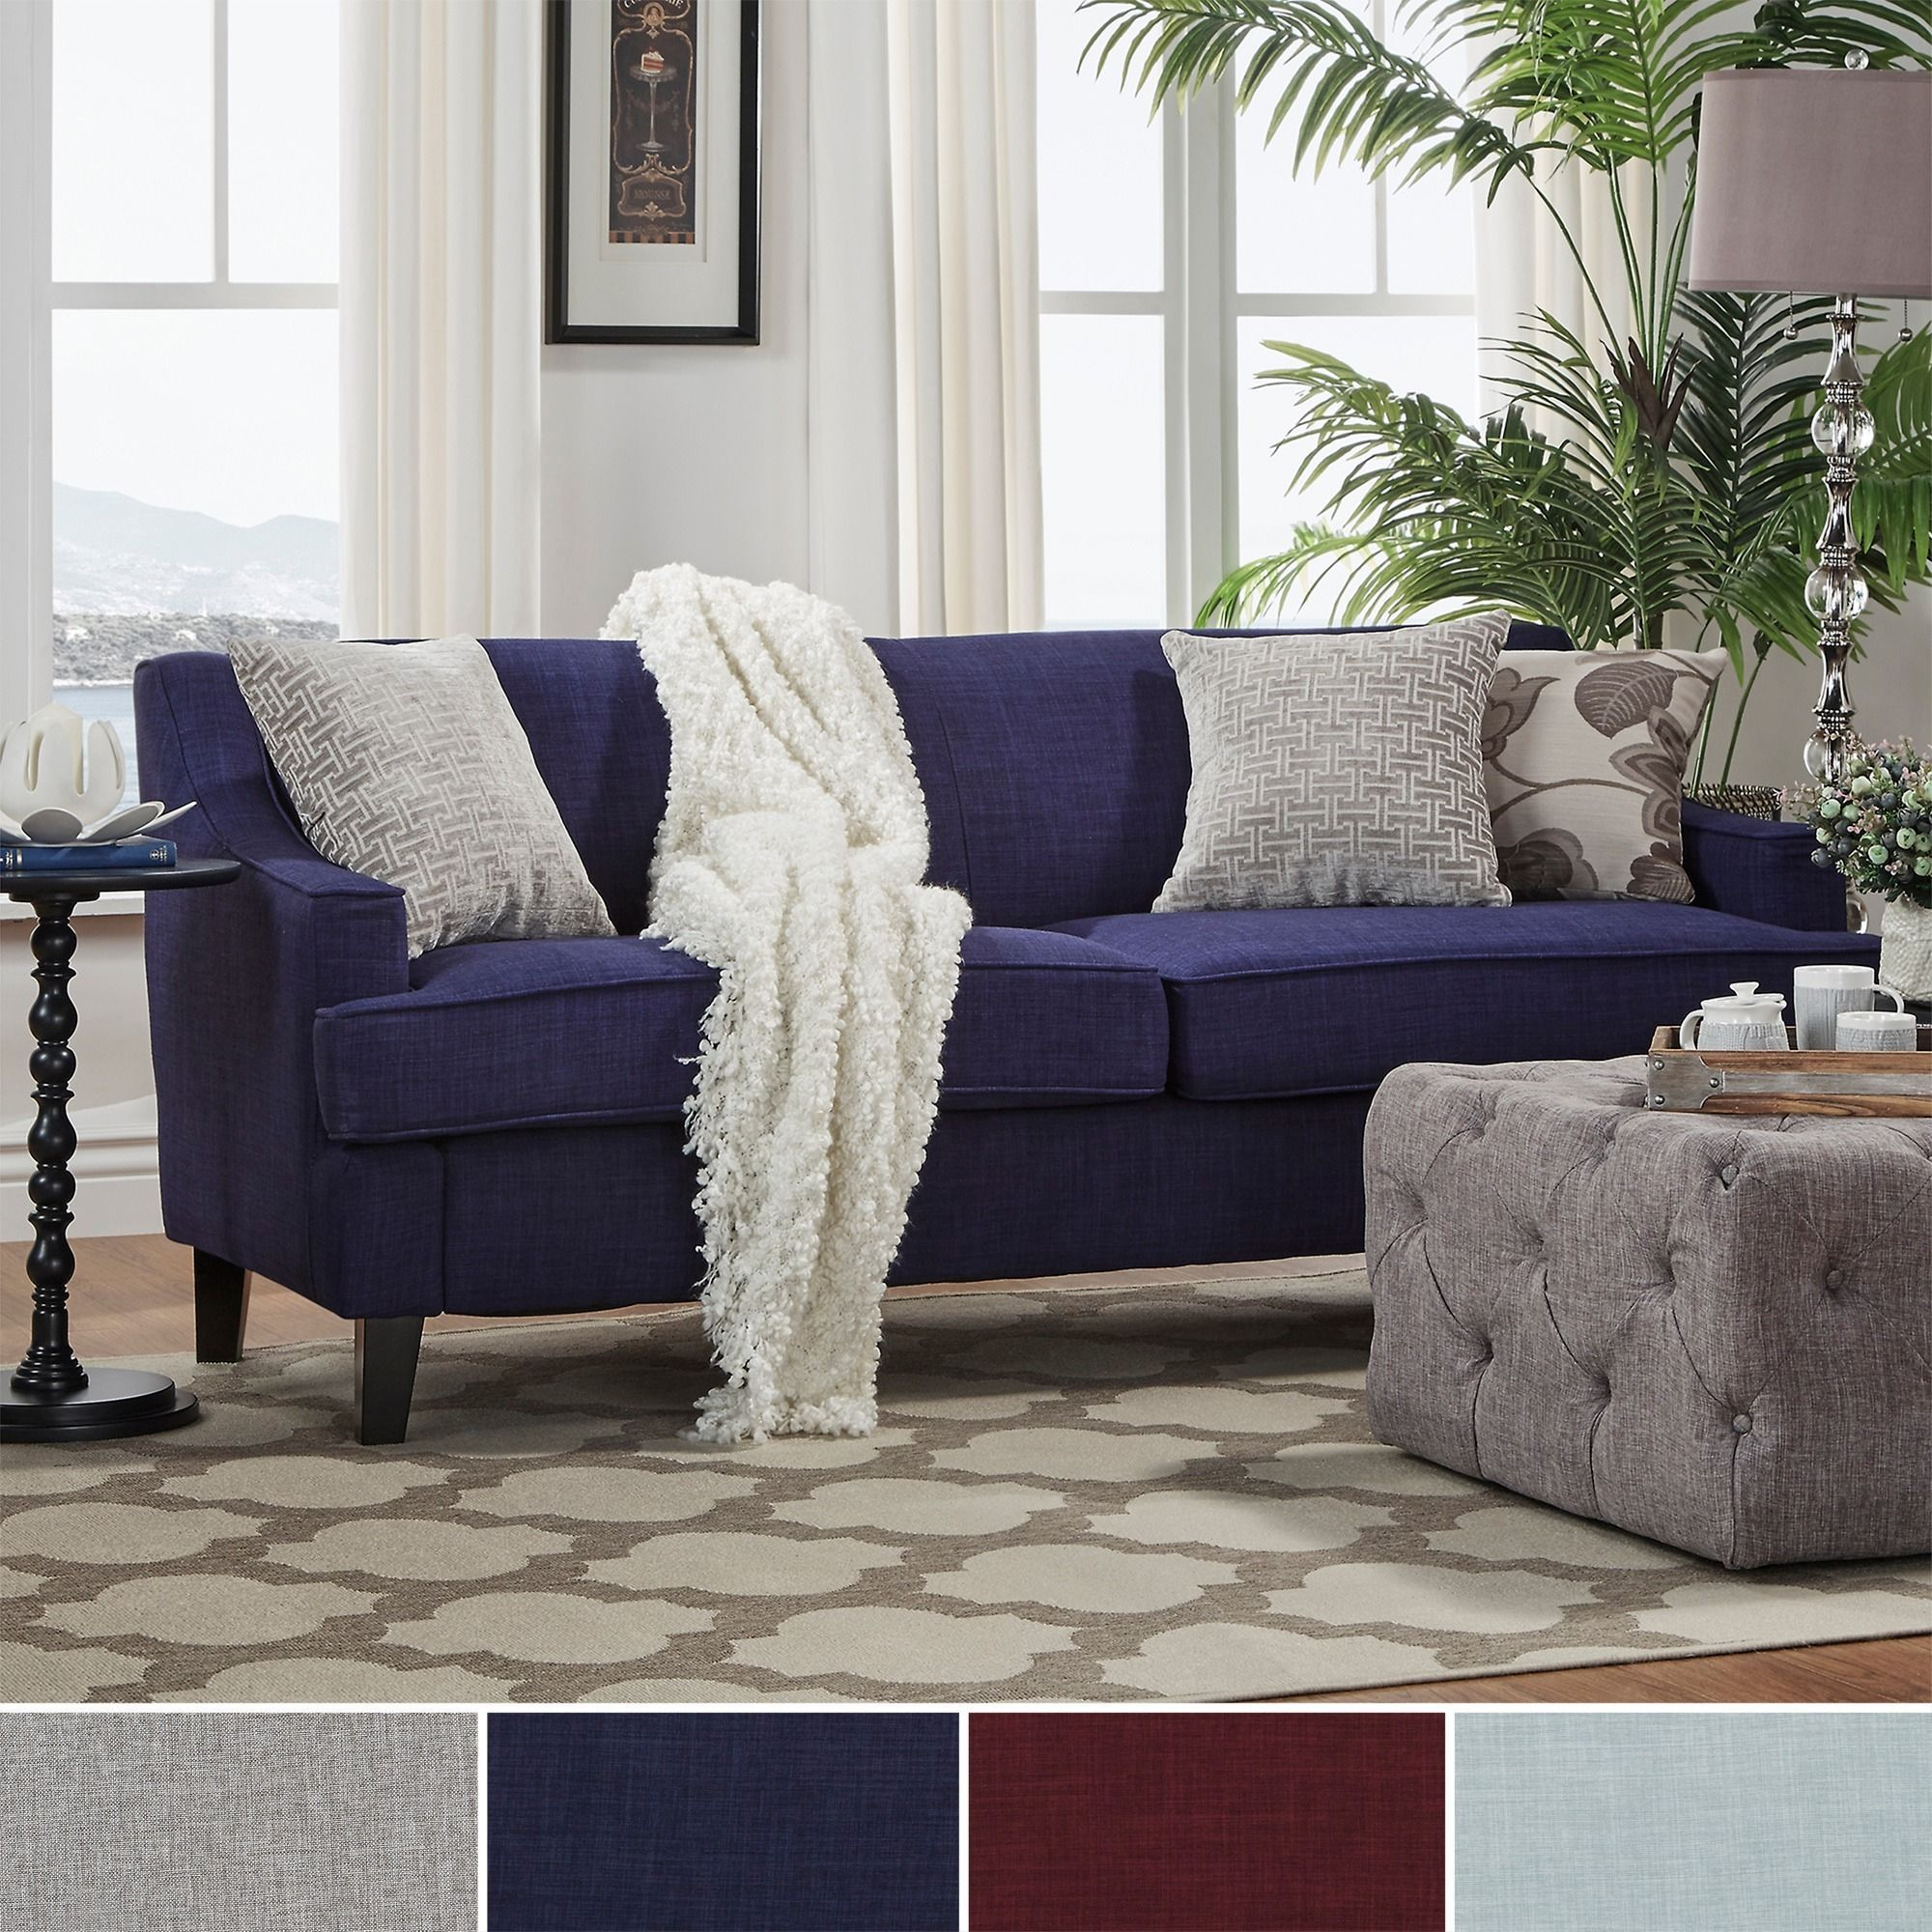 Rejuvenate your living space with this stunning sofa. The two-cushion long  sofa features